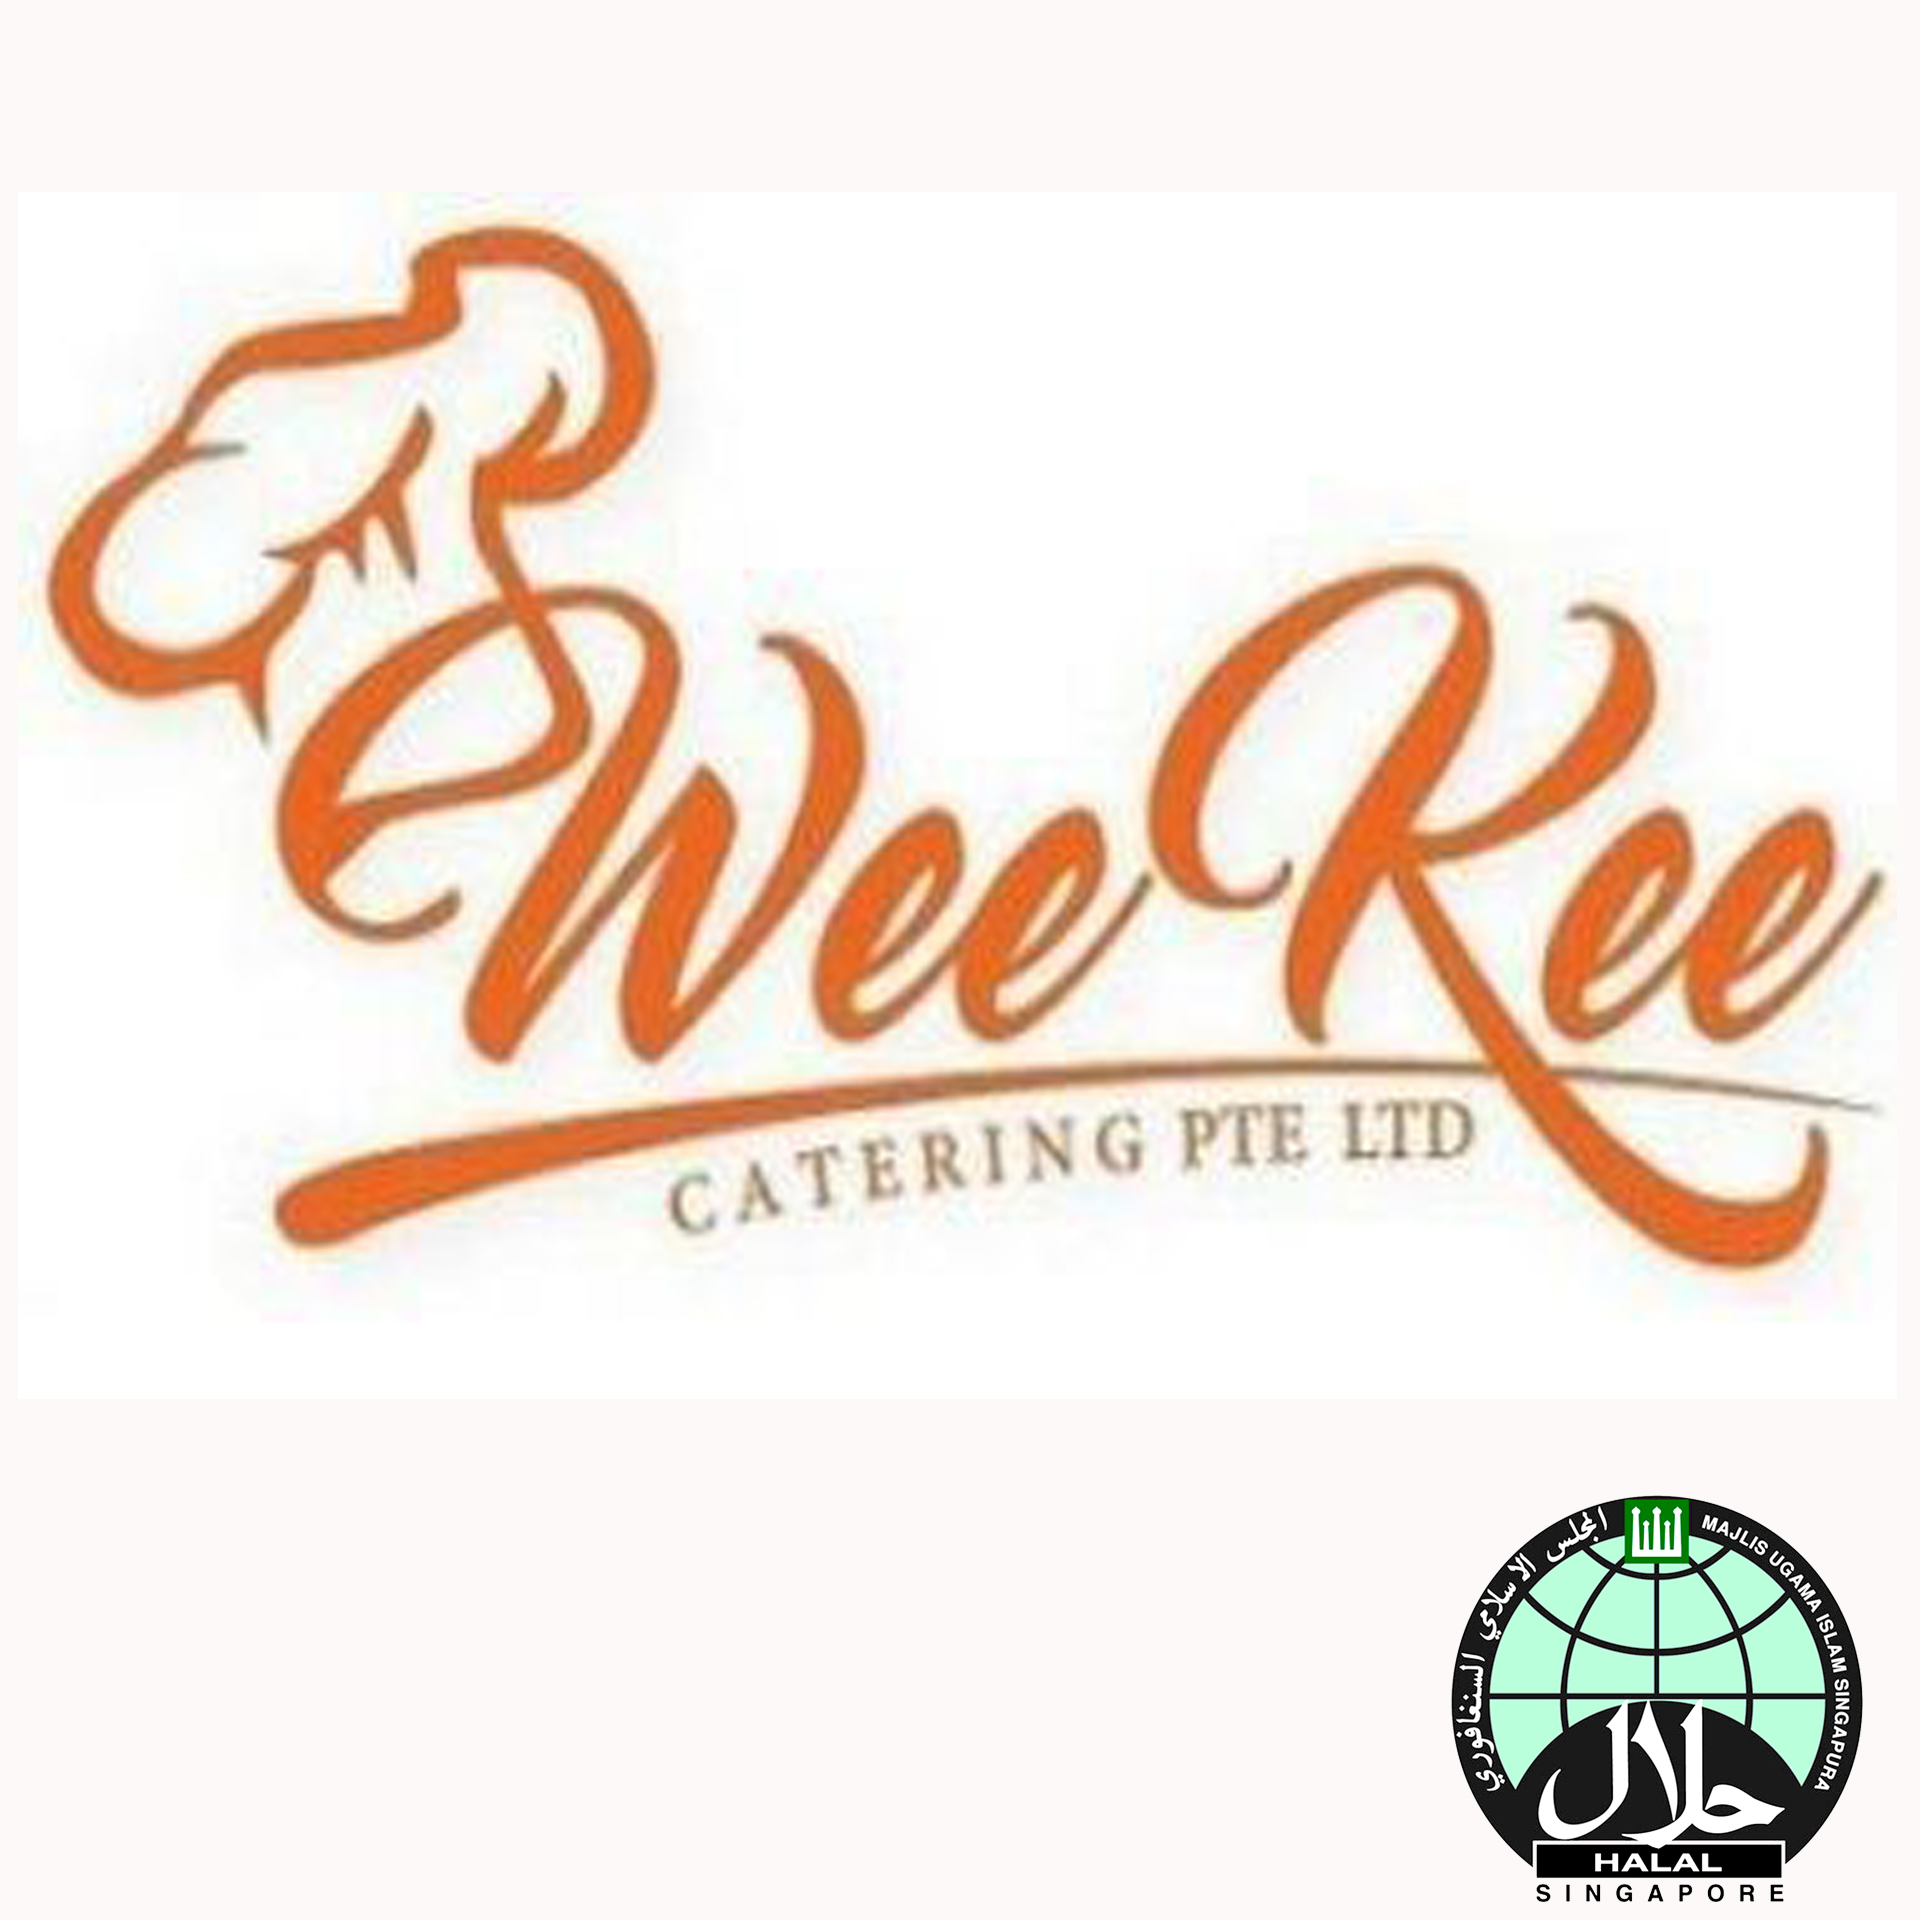 Wee Kee Catering image